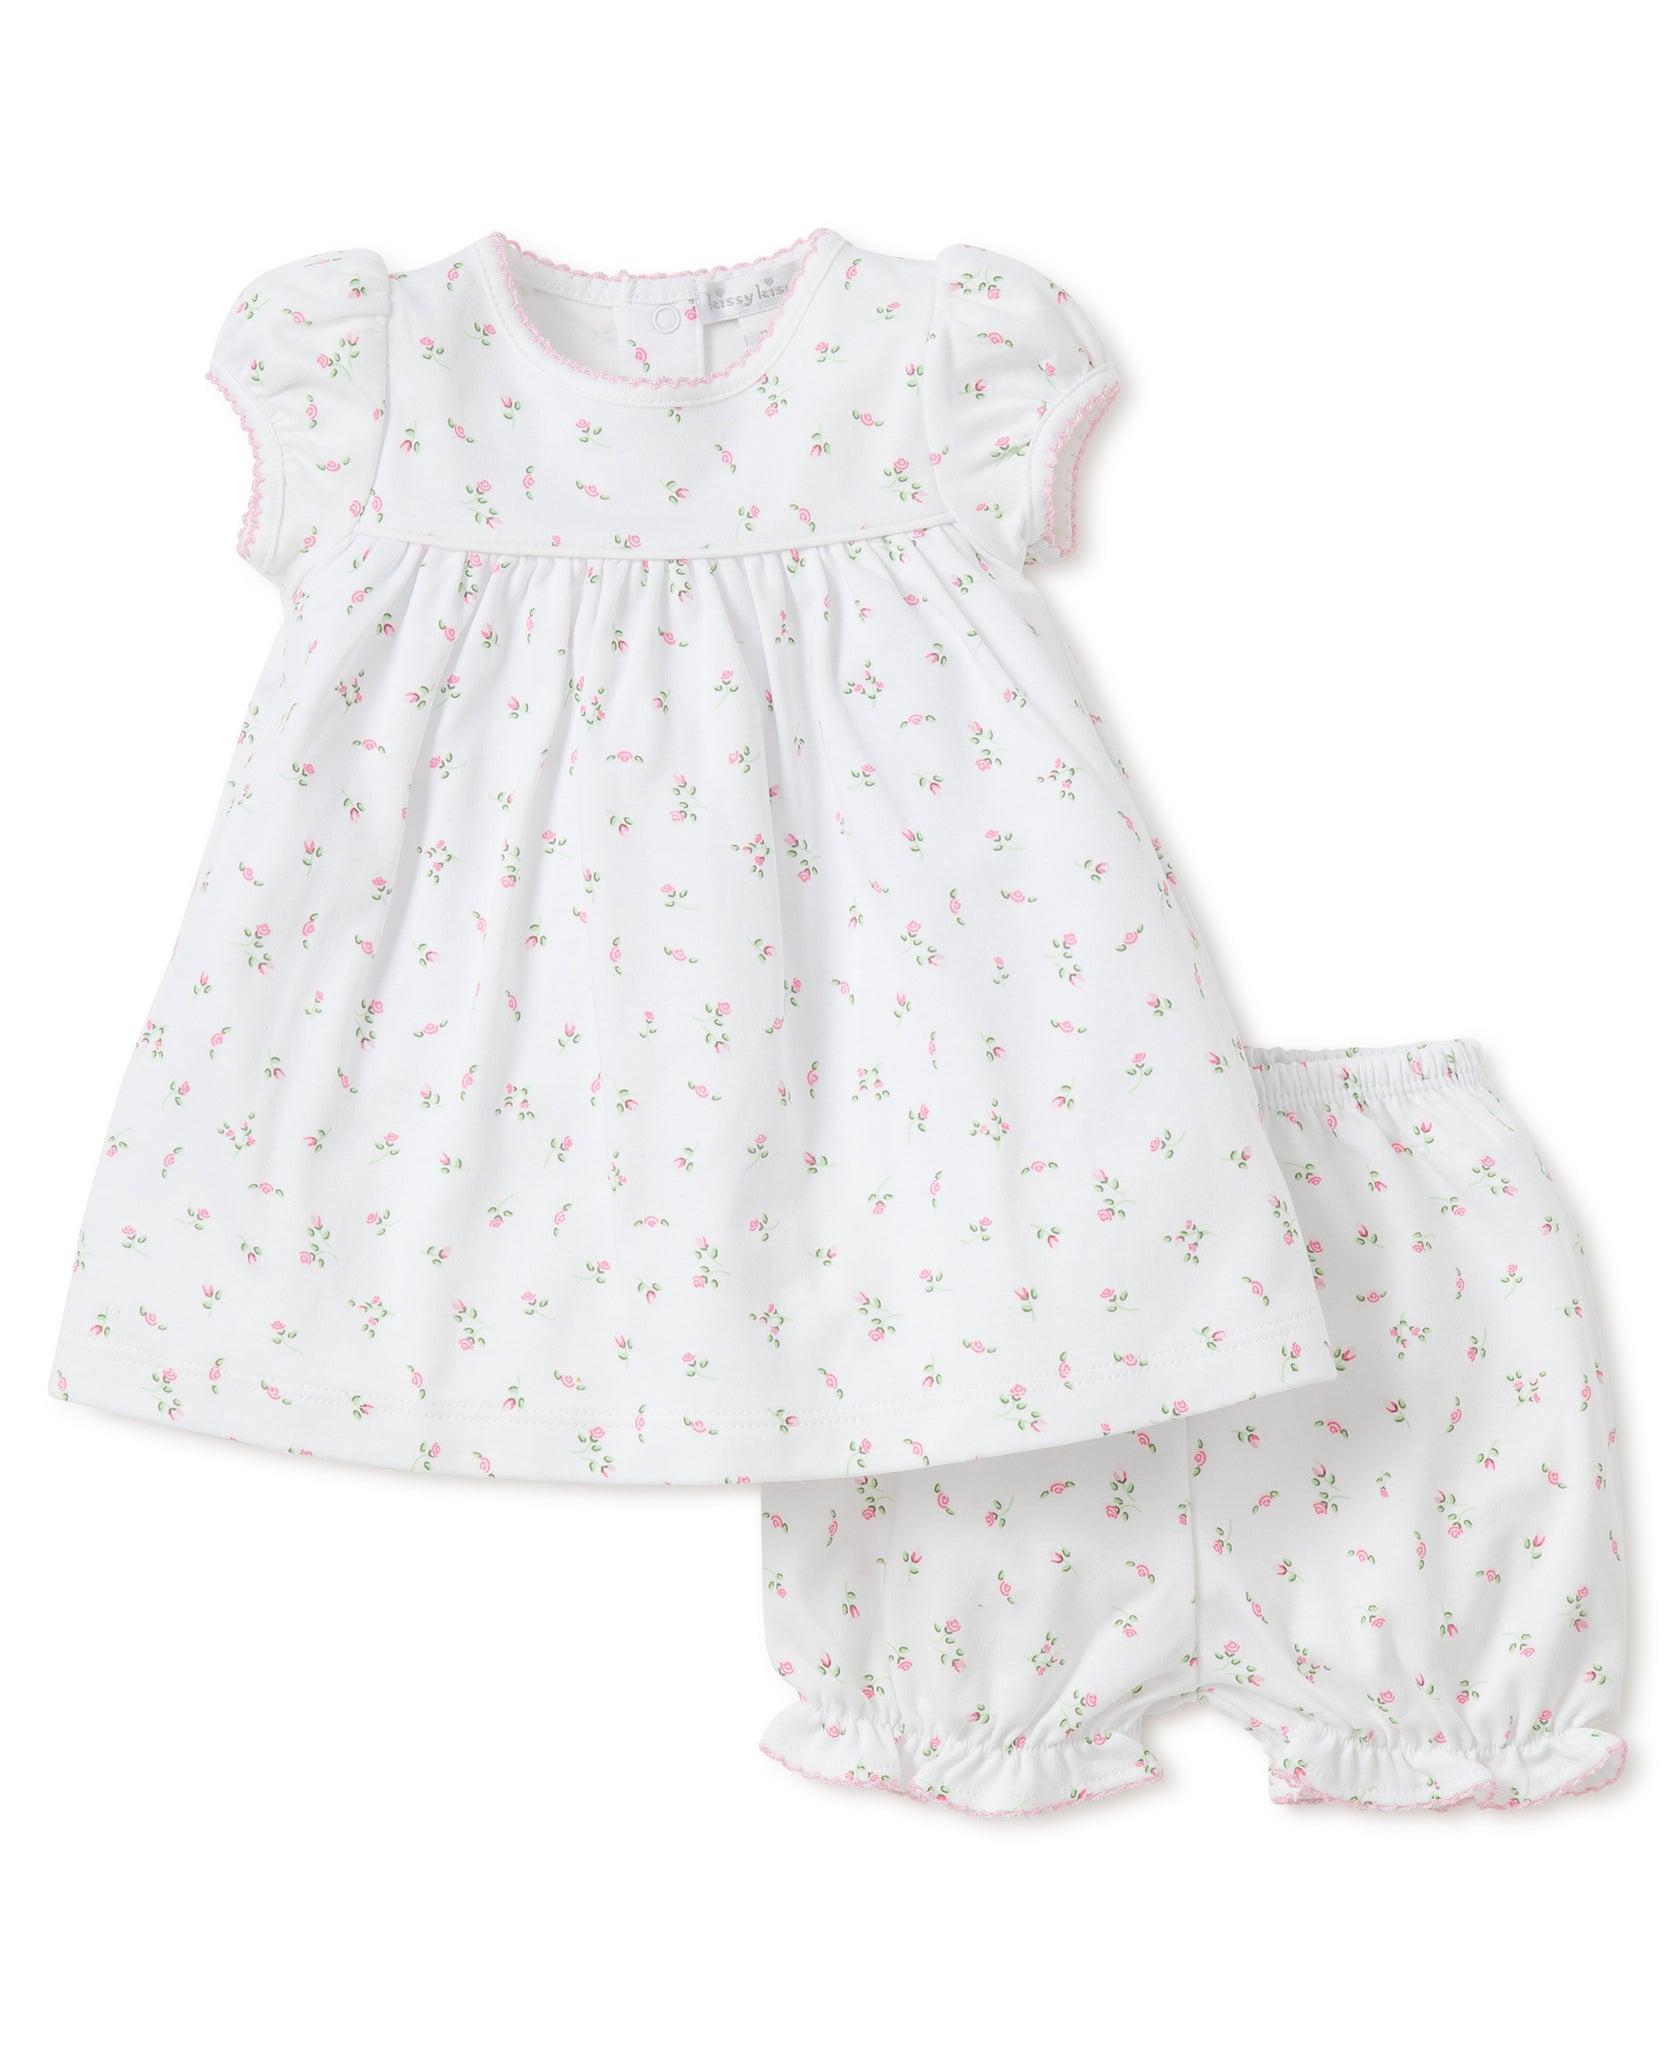 Garden Roses Print Dress with Diaper Cover